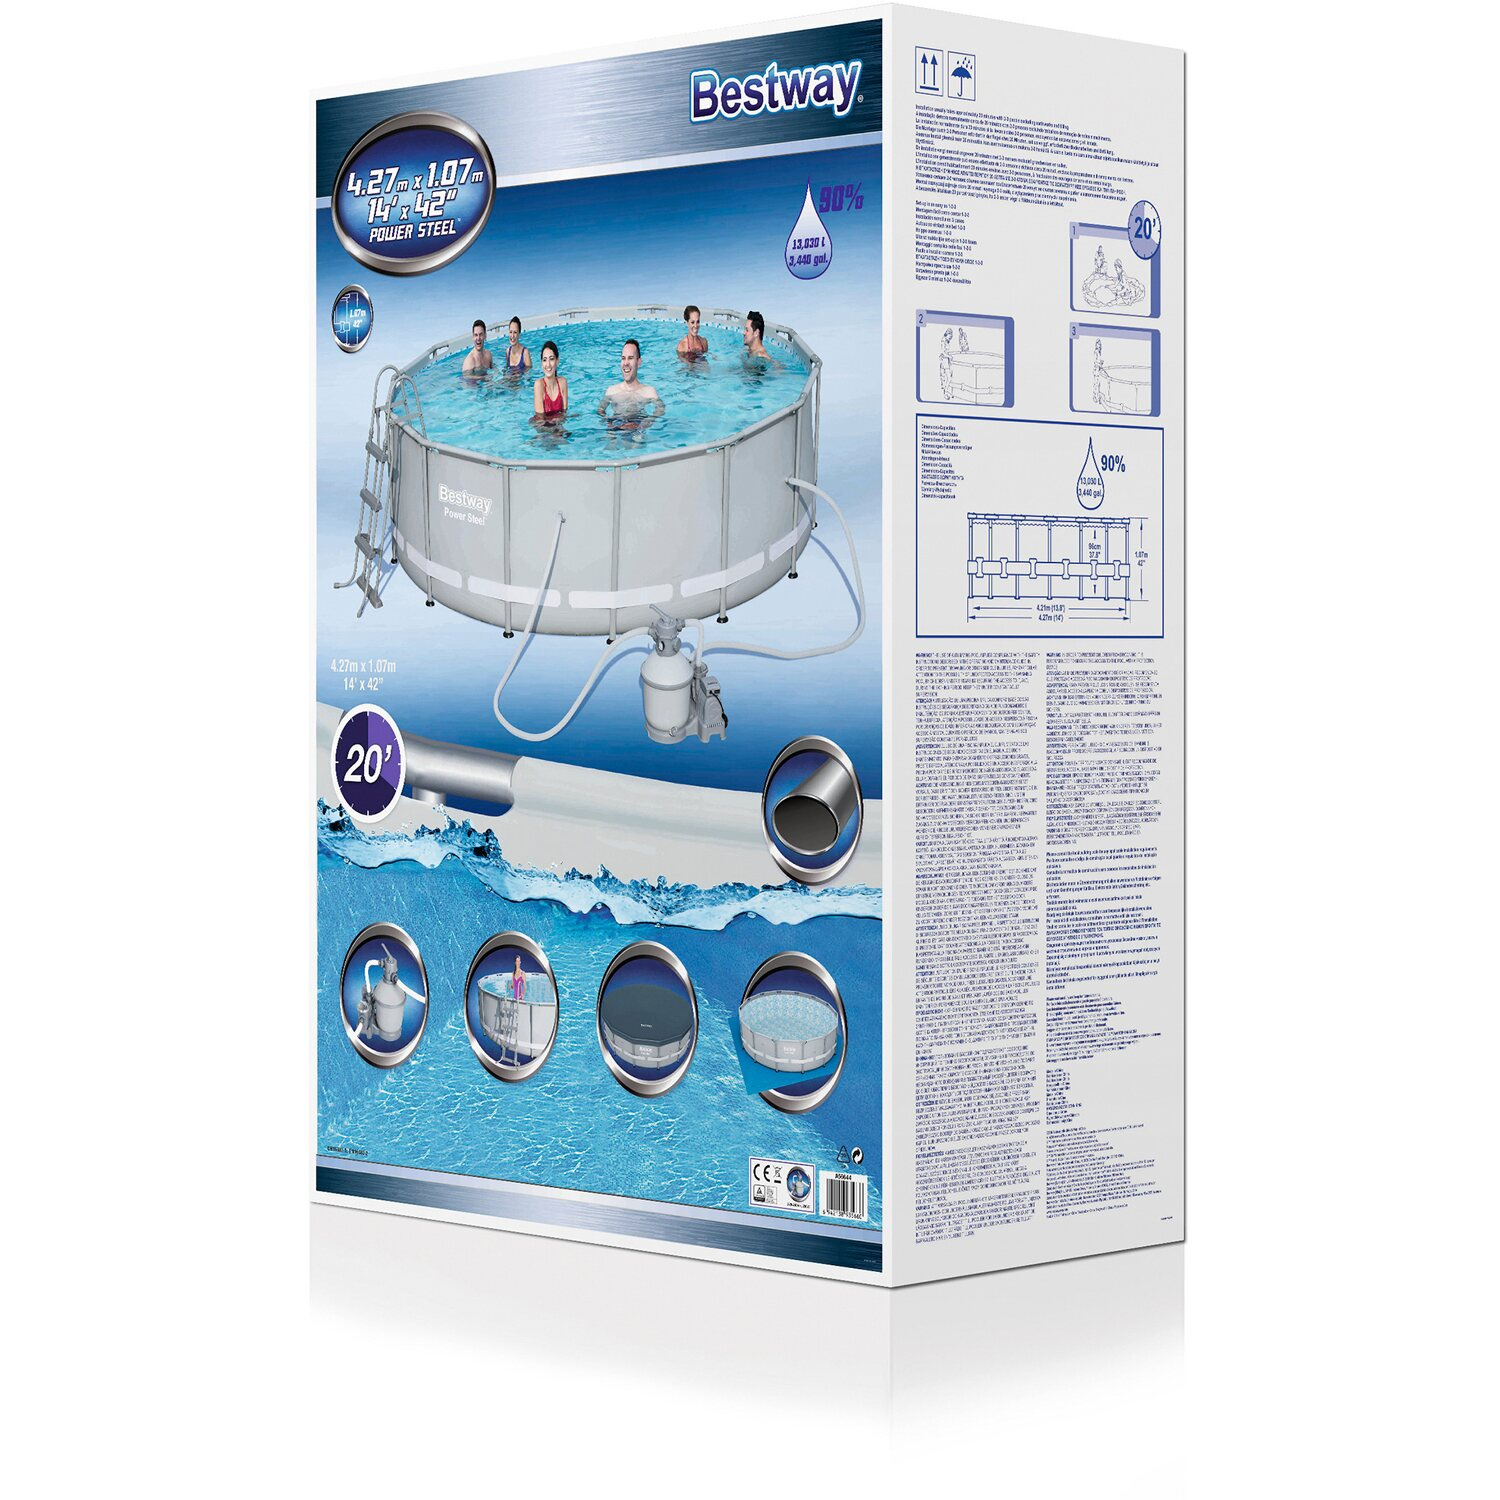 Bestway pool set power steel frame 427 cm x 107 cm mit for Obi pool set